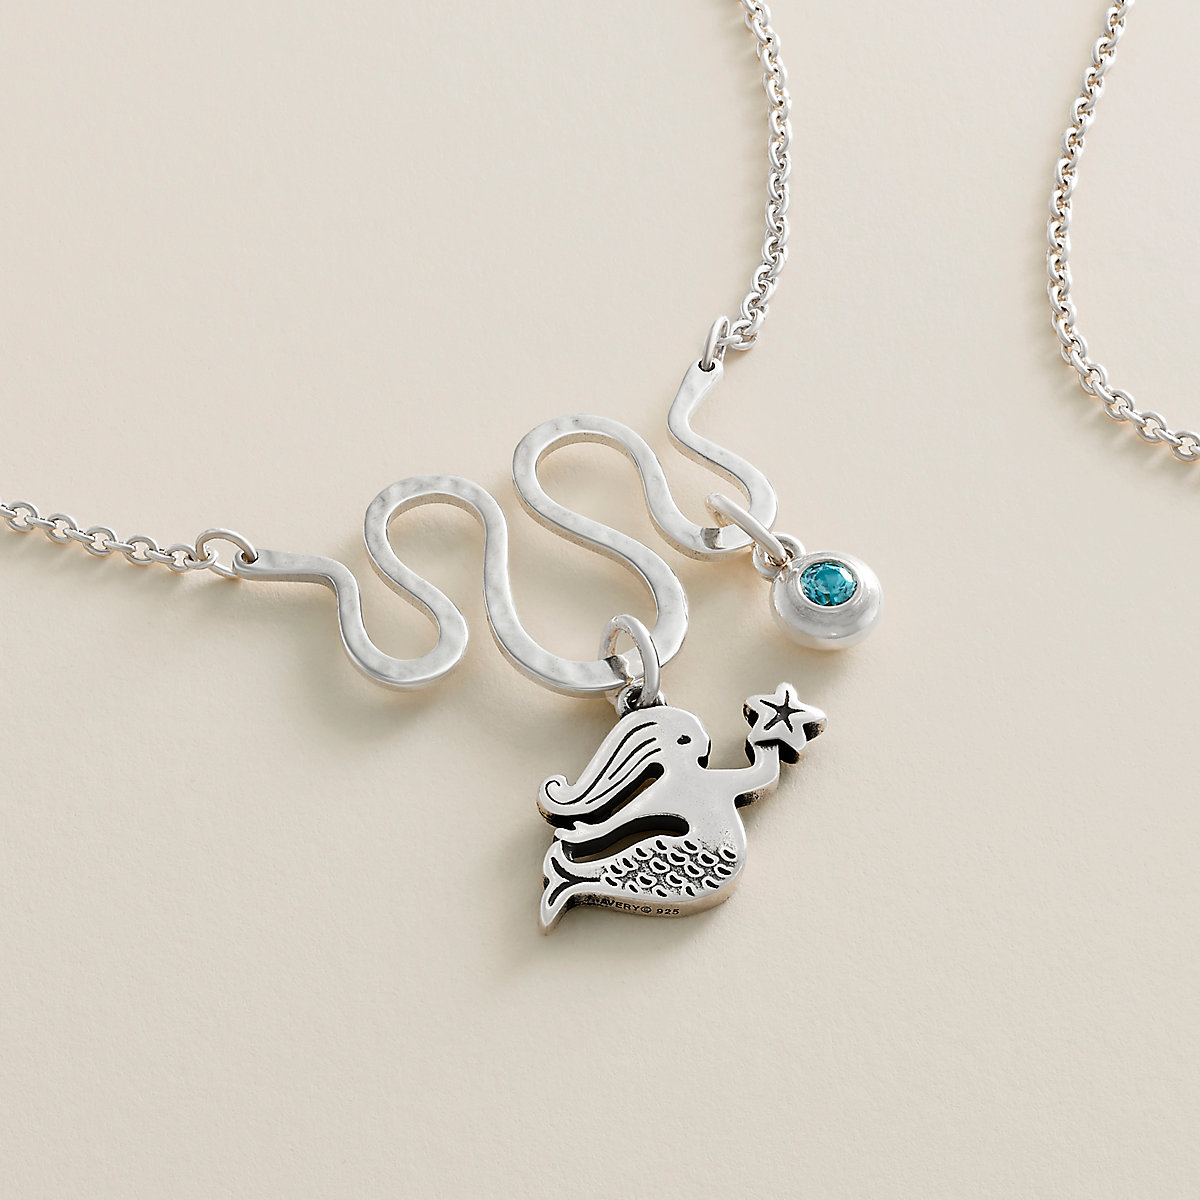 Journey Changeable Charm Holder Necklace   James Avery